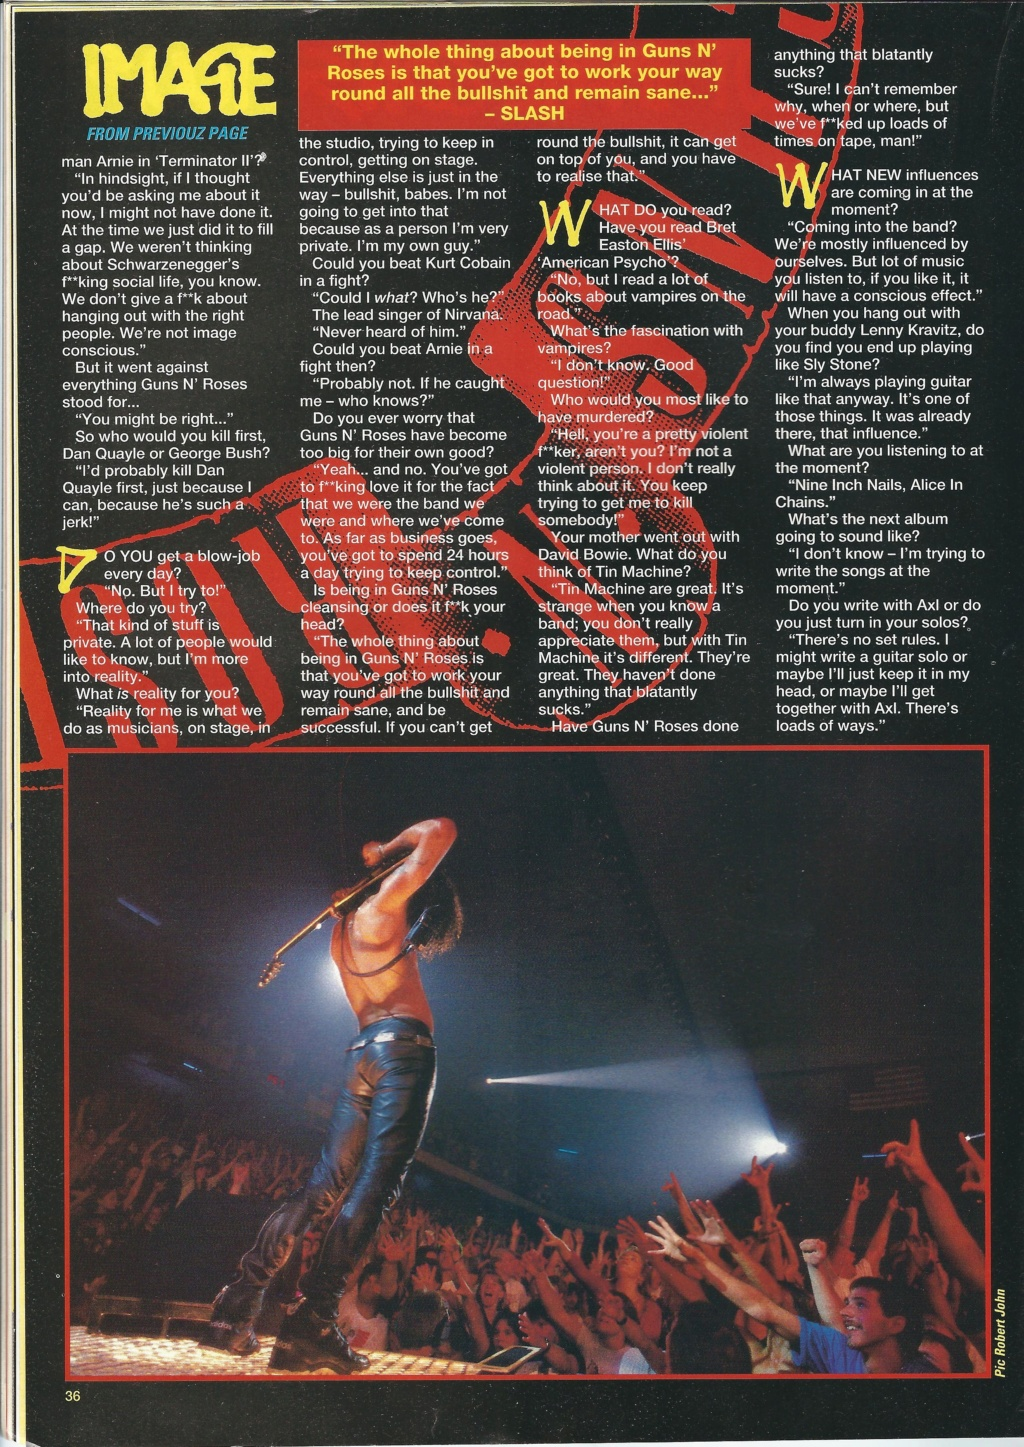 1992.05.16 - Kerrang! - My Fight to Remain Sane and Successful! (Slash) Scan0020